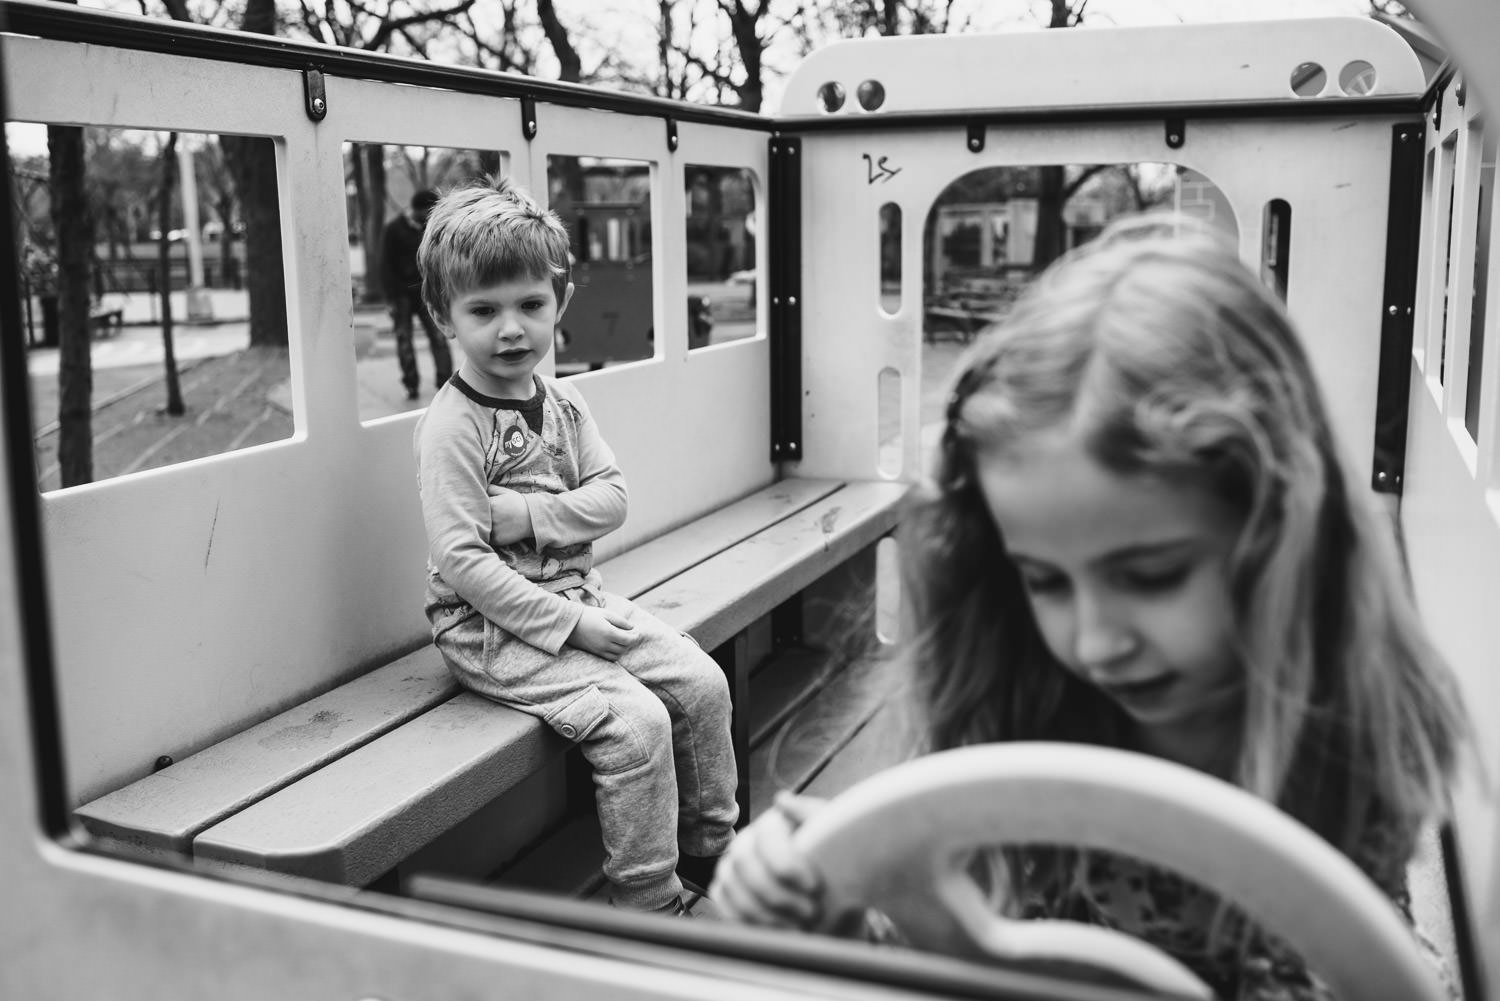 Two children play on a schoolbus structure at a playground.